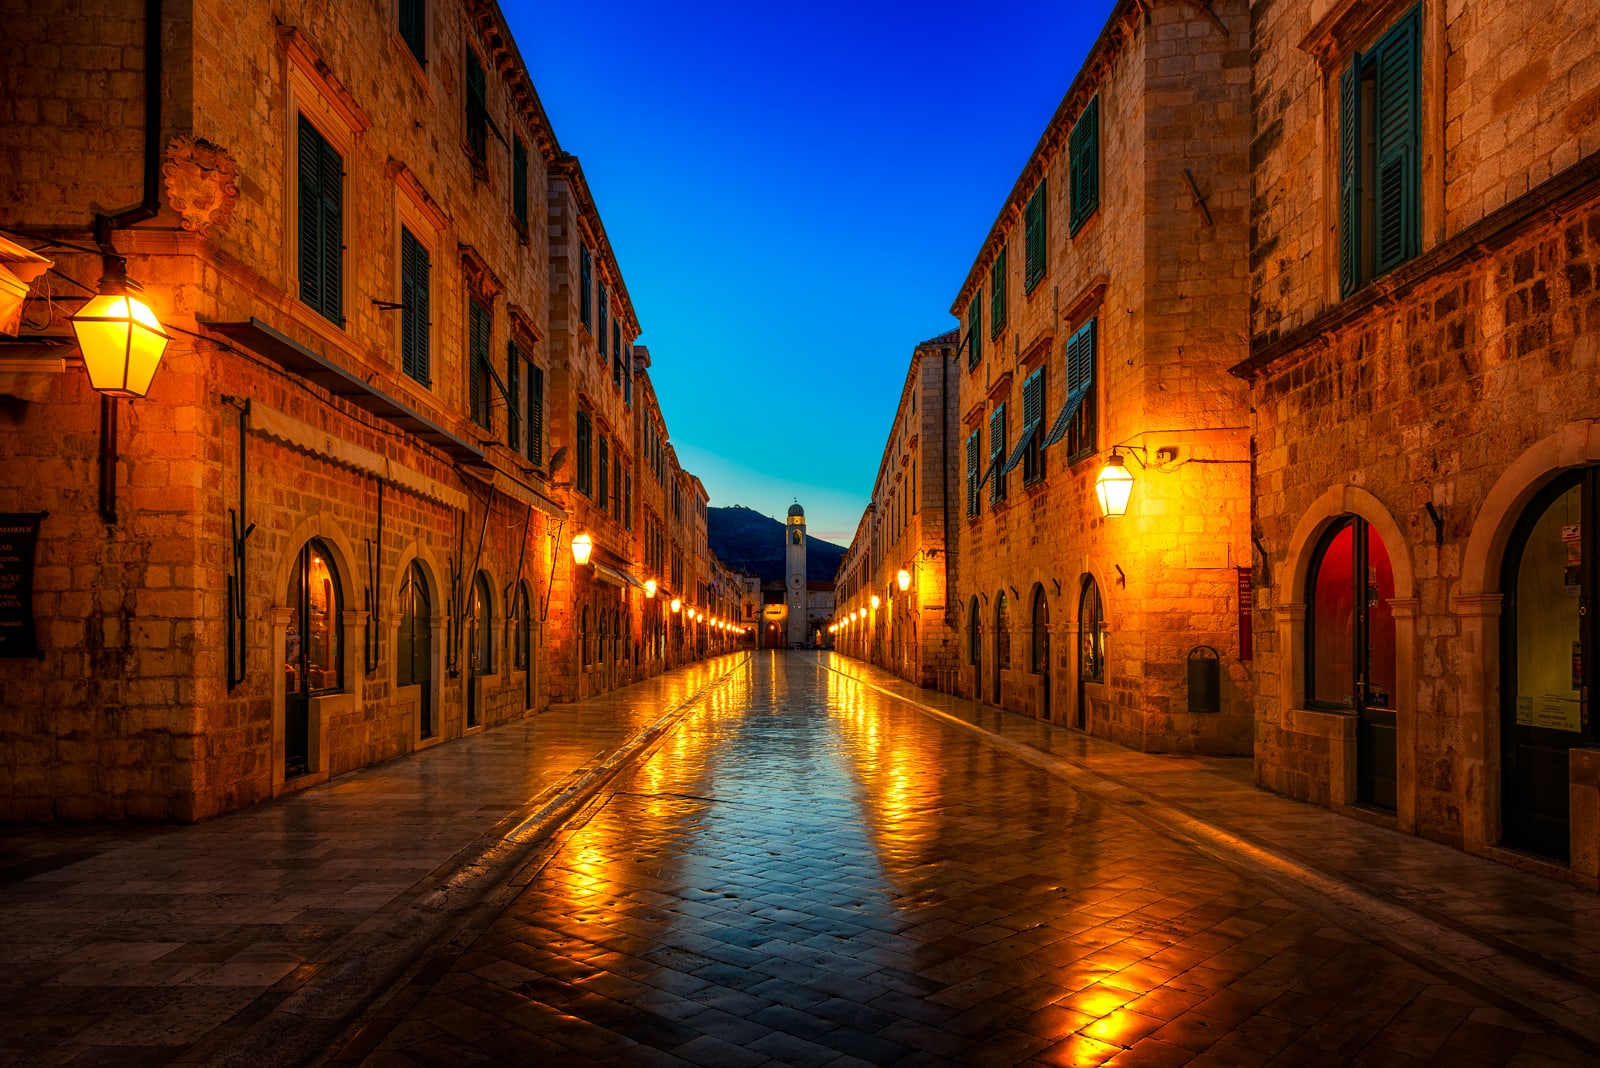 The main street Stradun and bell tower in Dubrovnik, Croatia at night.